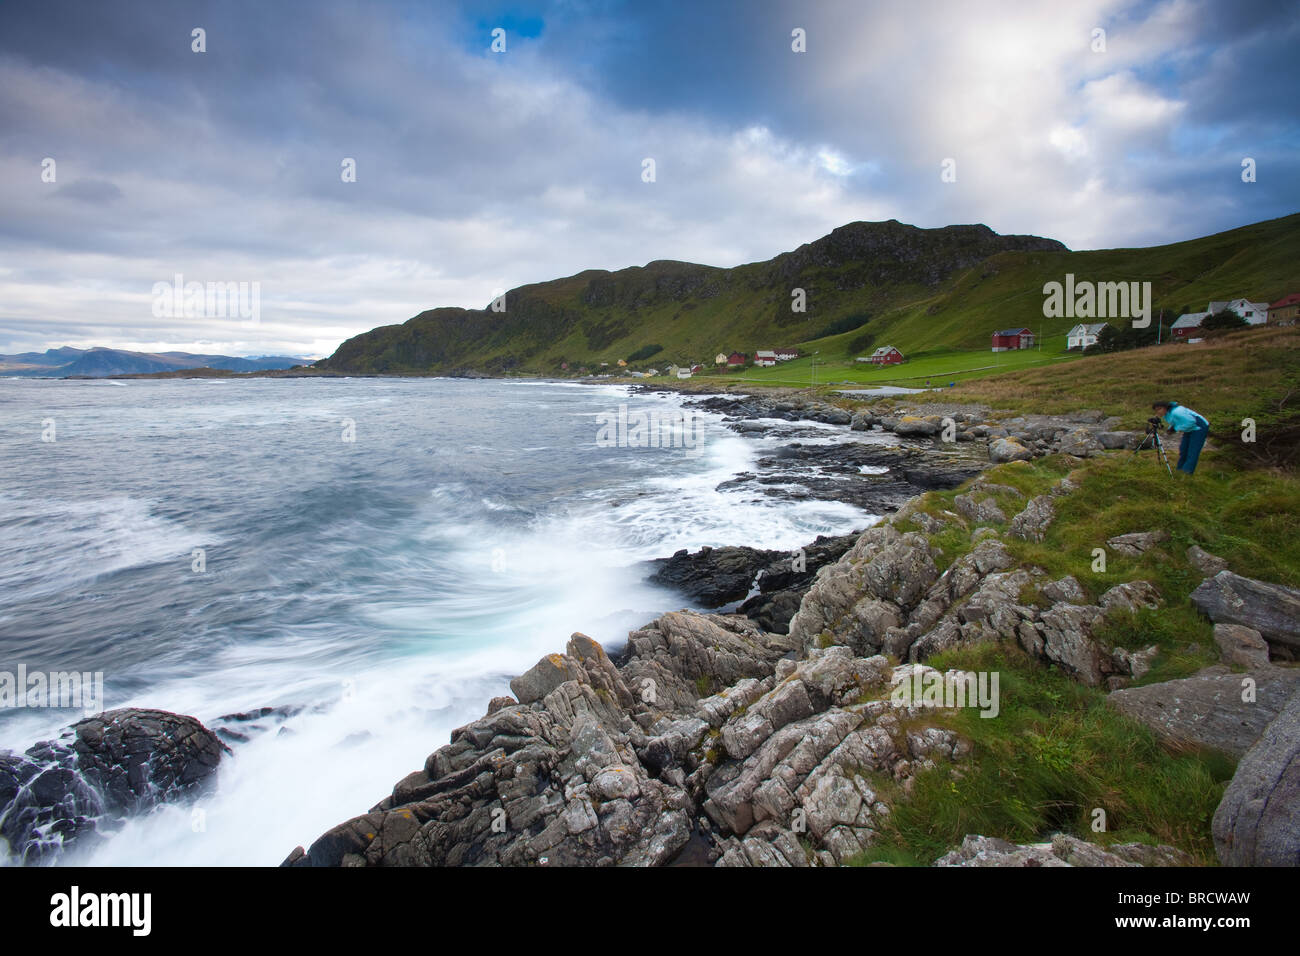 Photographer at work near the small community Goksøyr on the island Runde on the west coast of Norway. - Stock Image